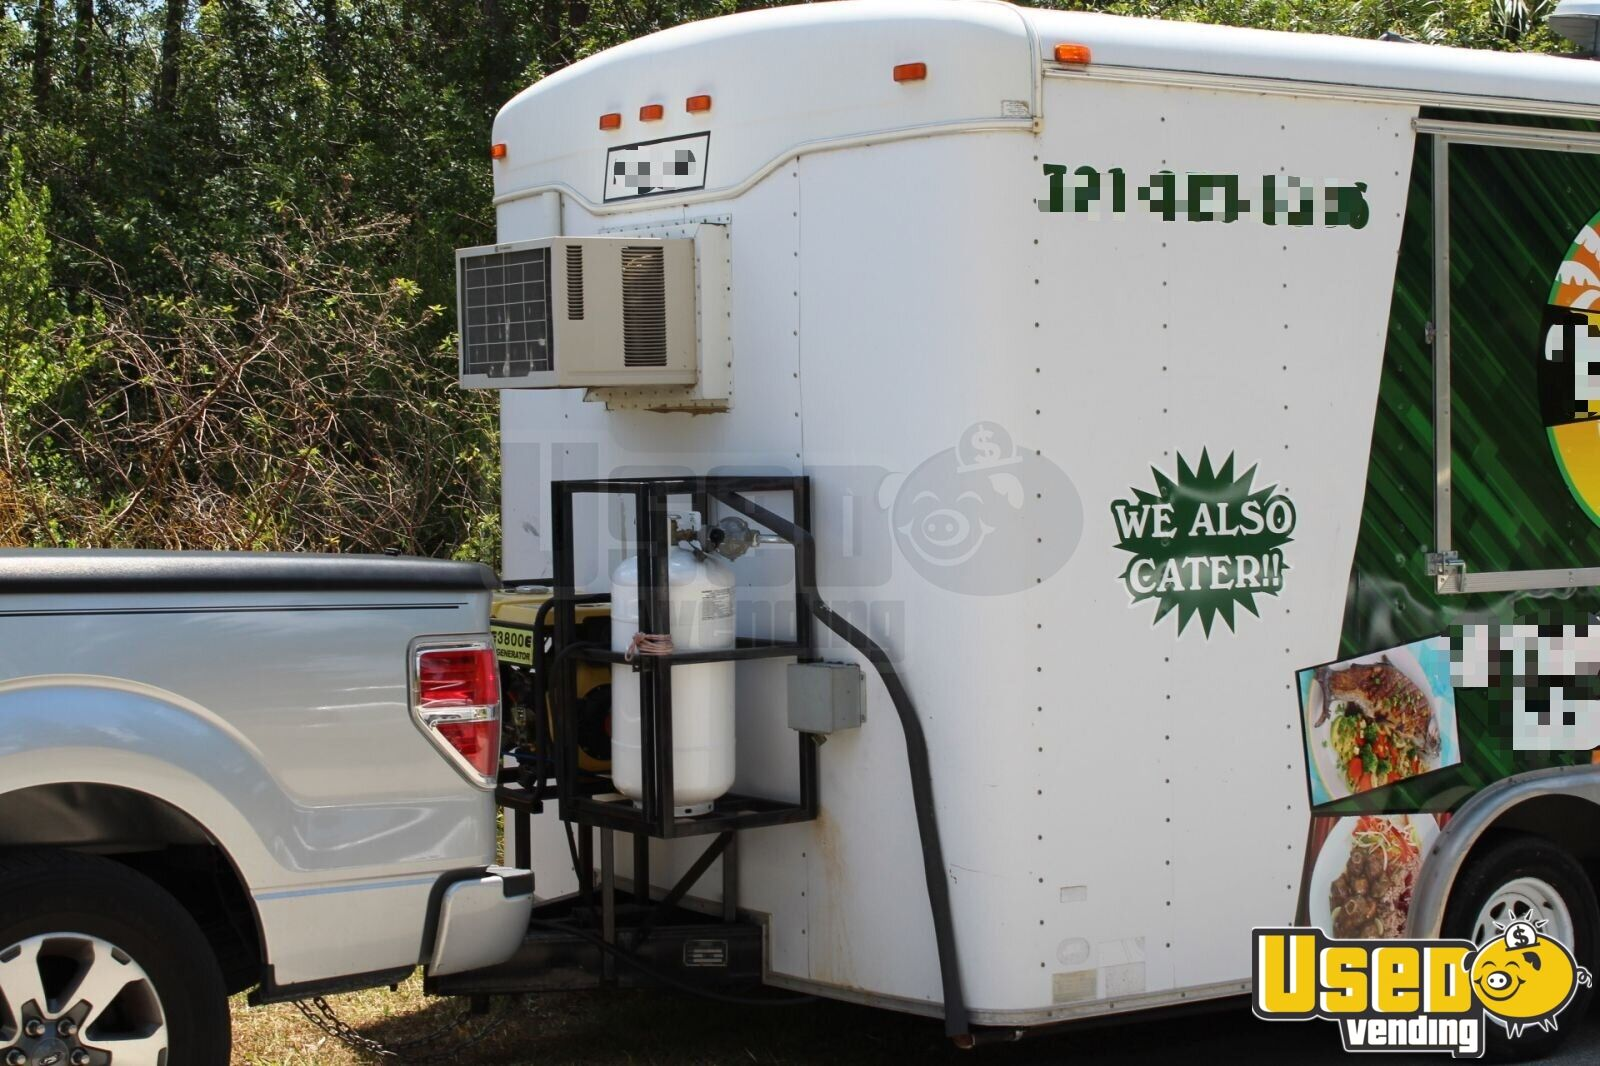 Haul Kitchen Food Trailer Removable Trailer Hitch Florida for Sale - 4